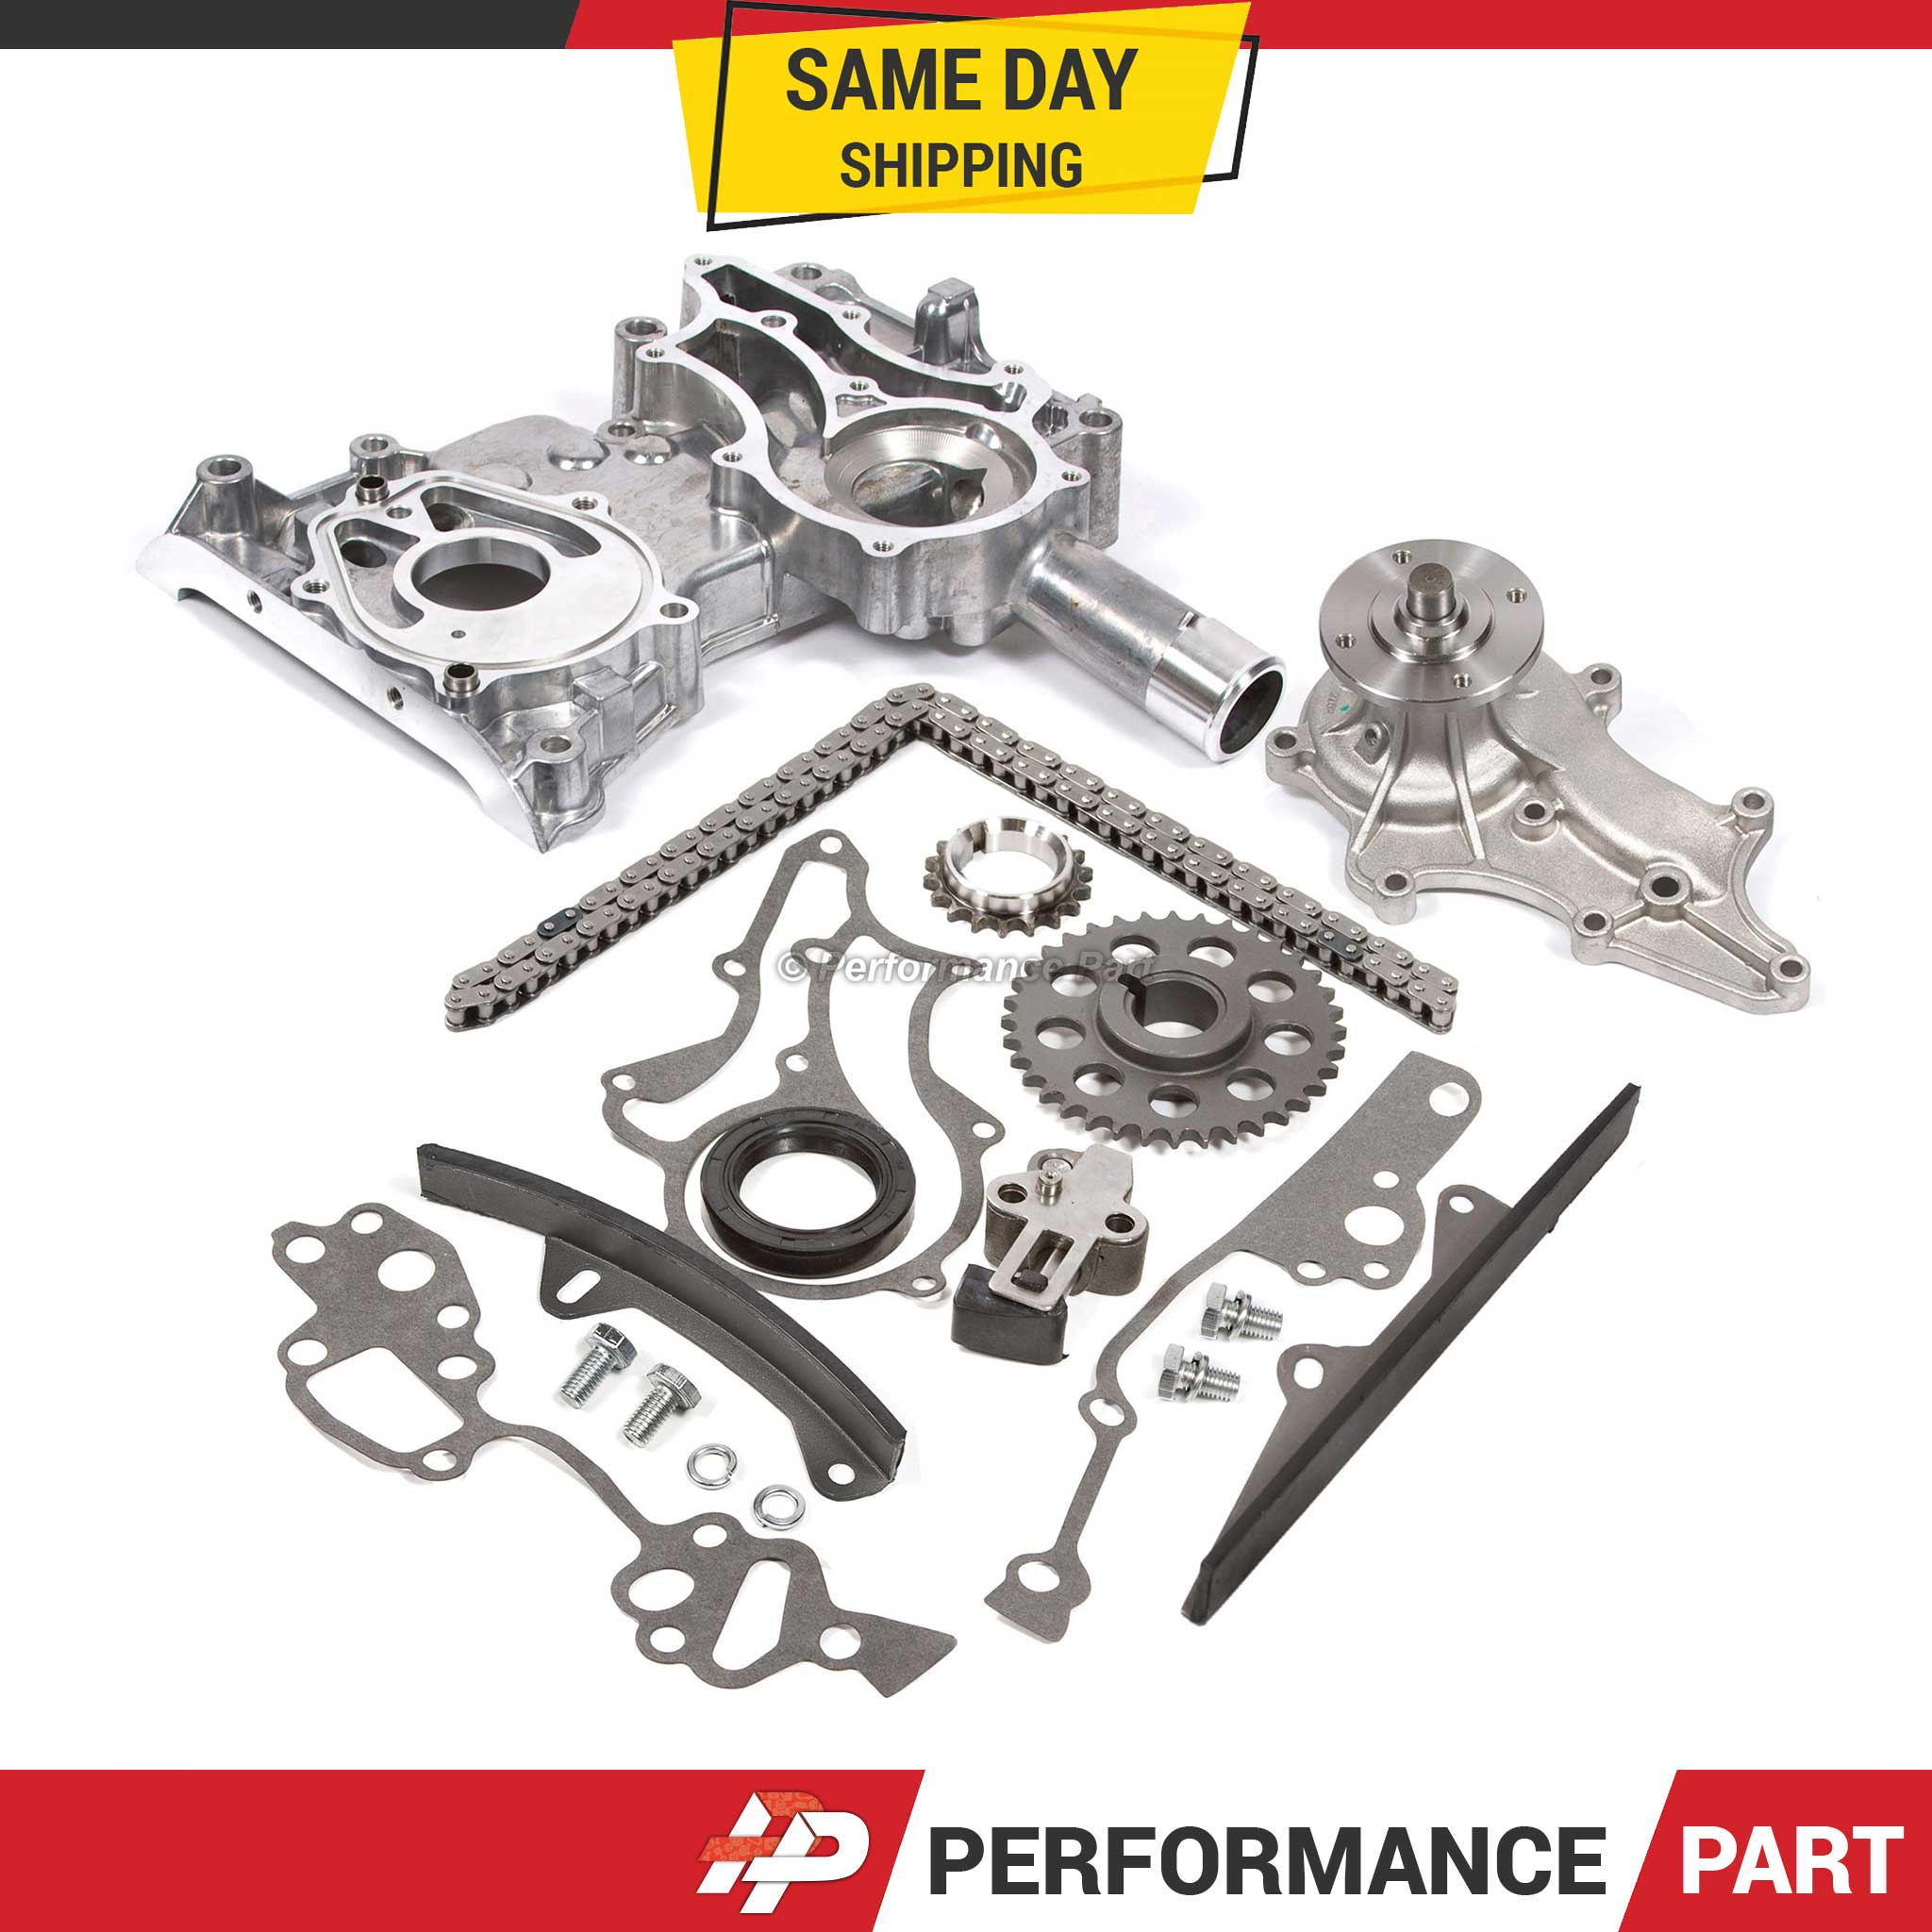 85 95 Toyota 22r 22re Water Pump Timing Chain Kit W 2 Metal Guides Belt 00 Saab 9 5 Image Is Loading